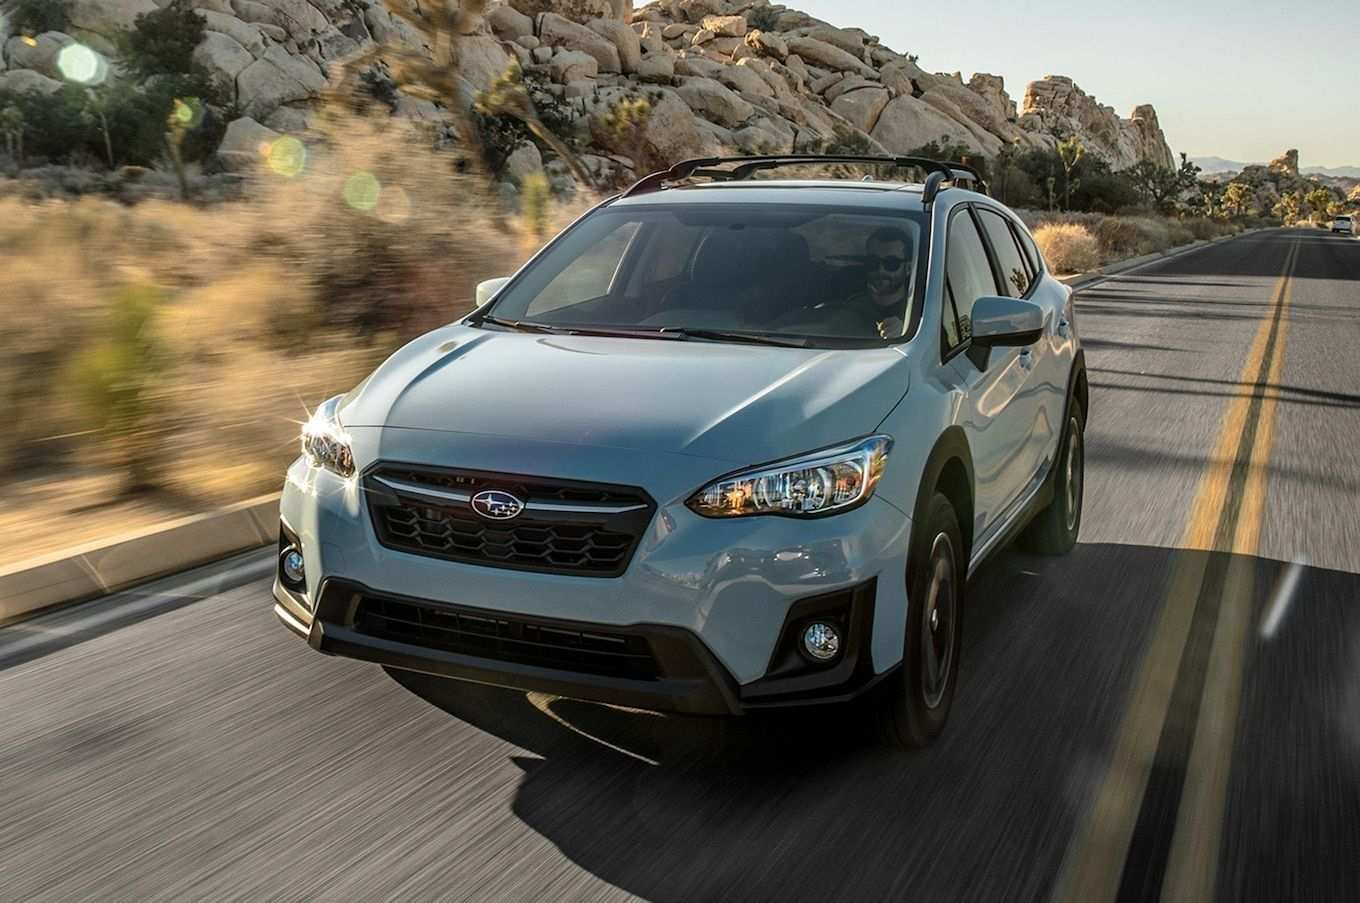 71 Best Review Subaru Electric Car 2019 Price with Subaru Electric Car 2019